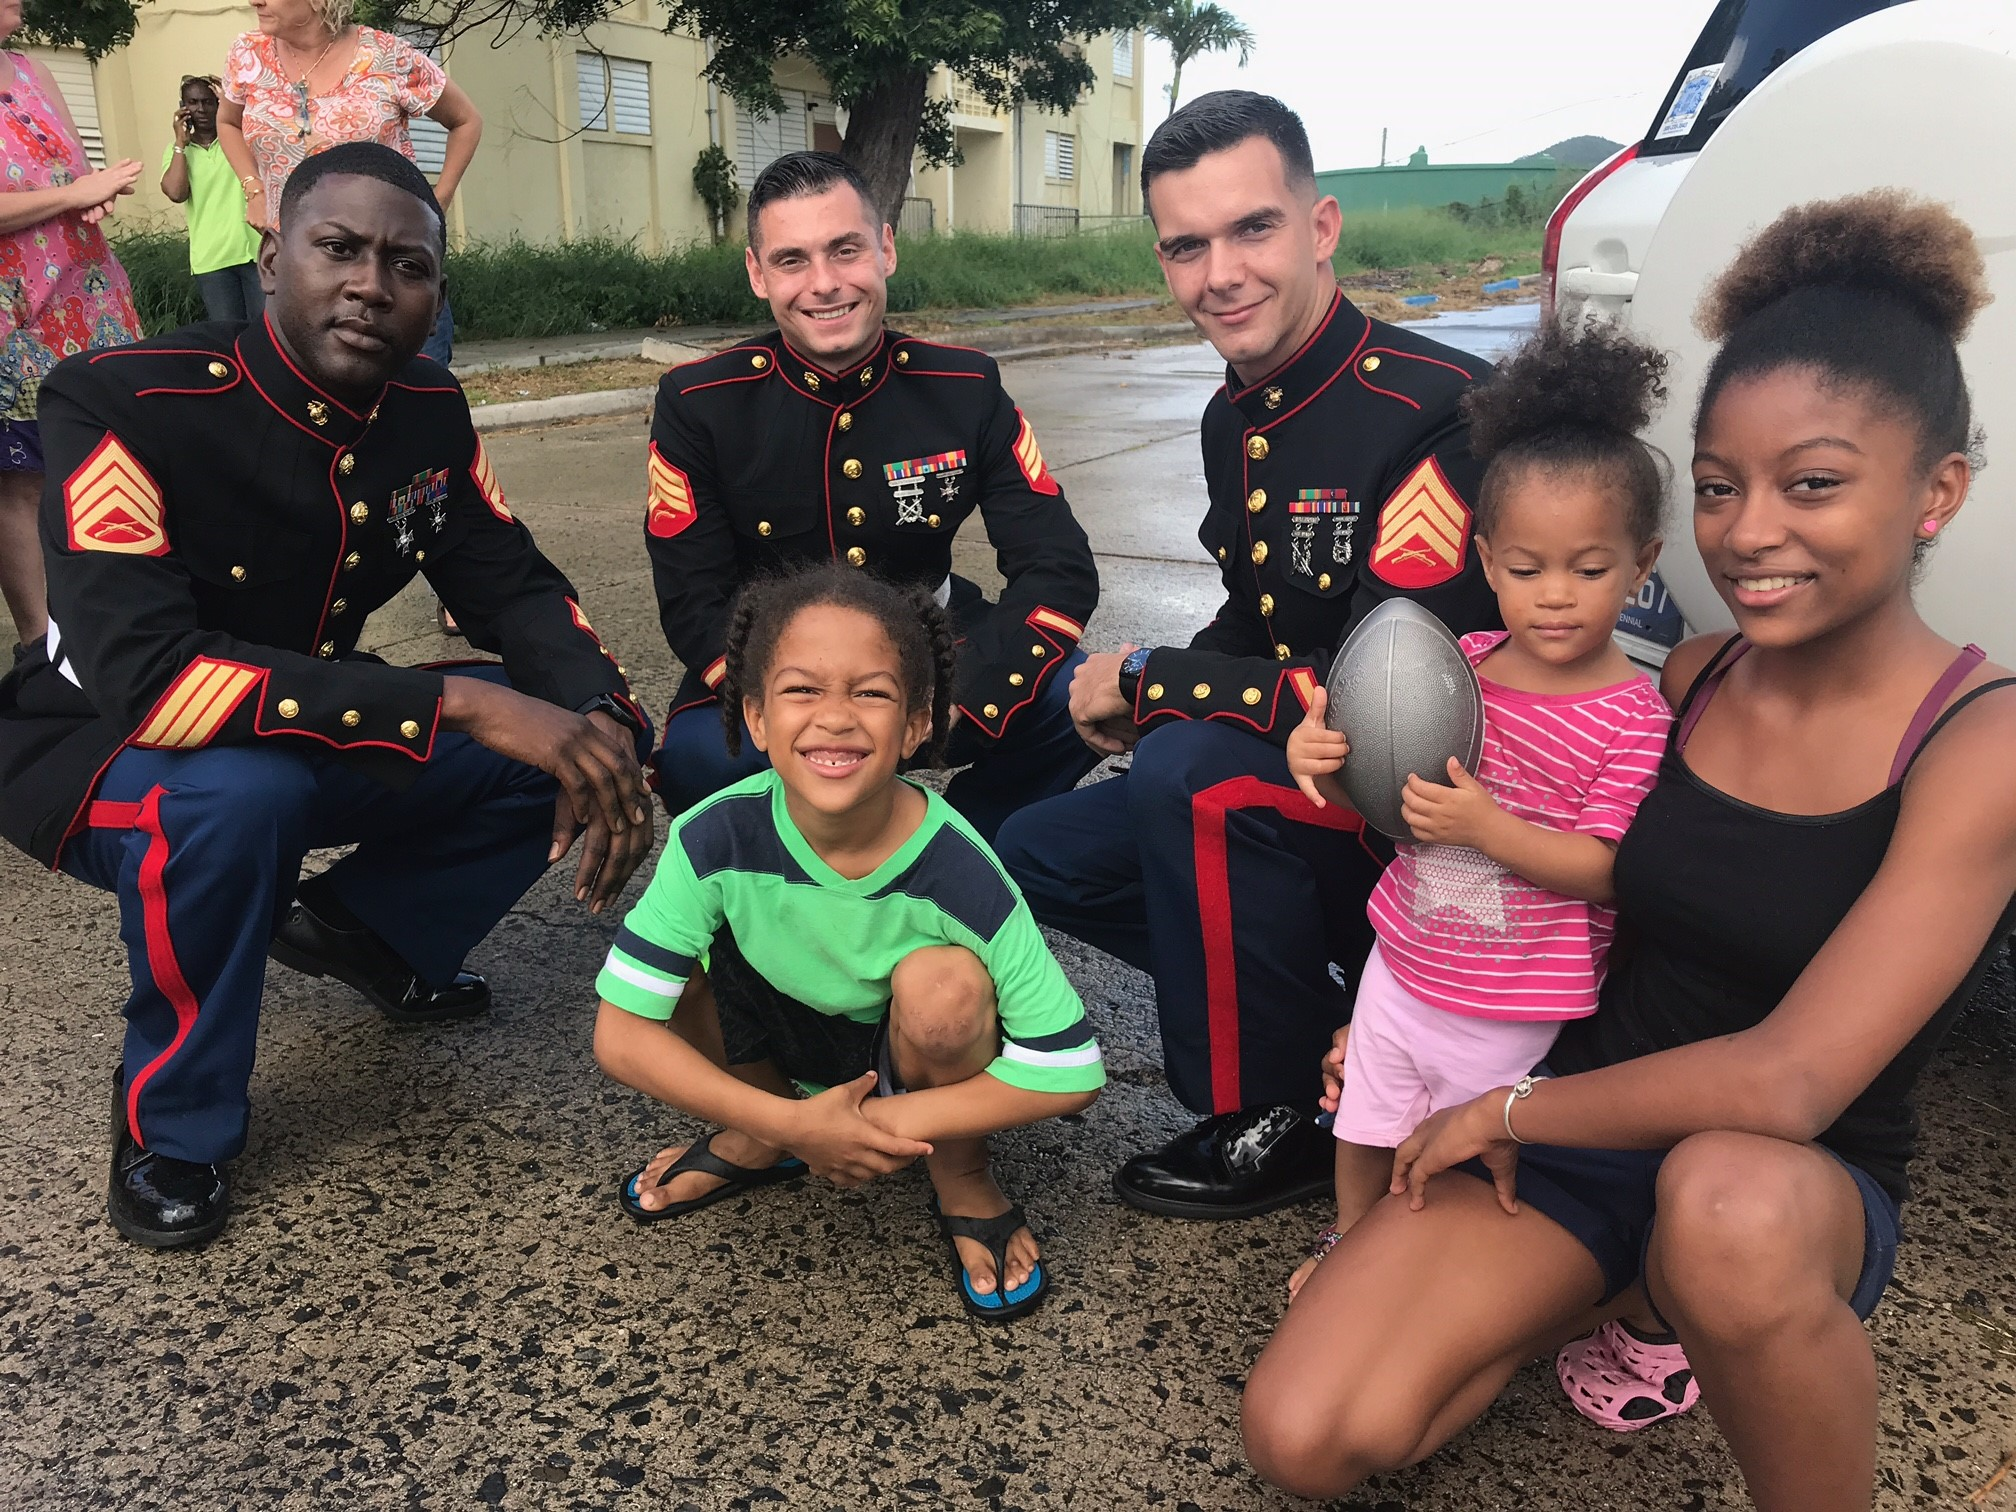 Toys For Tots Founder : Marine toys for tots foundation hta and partners